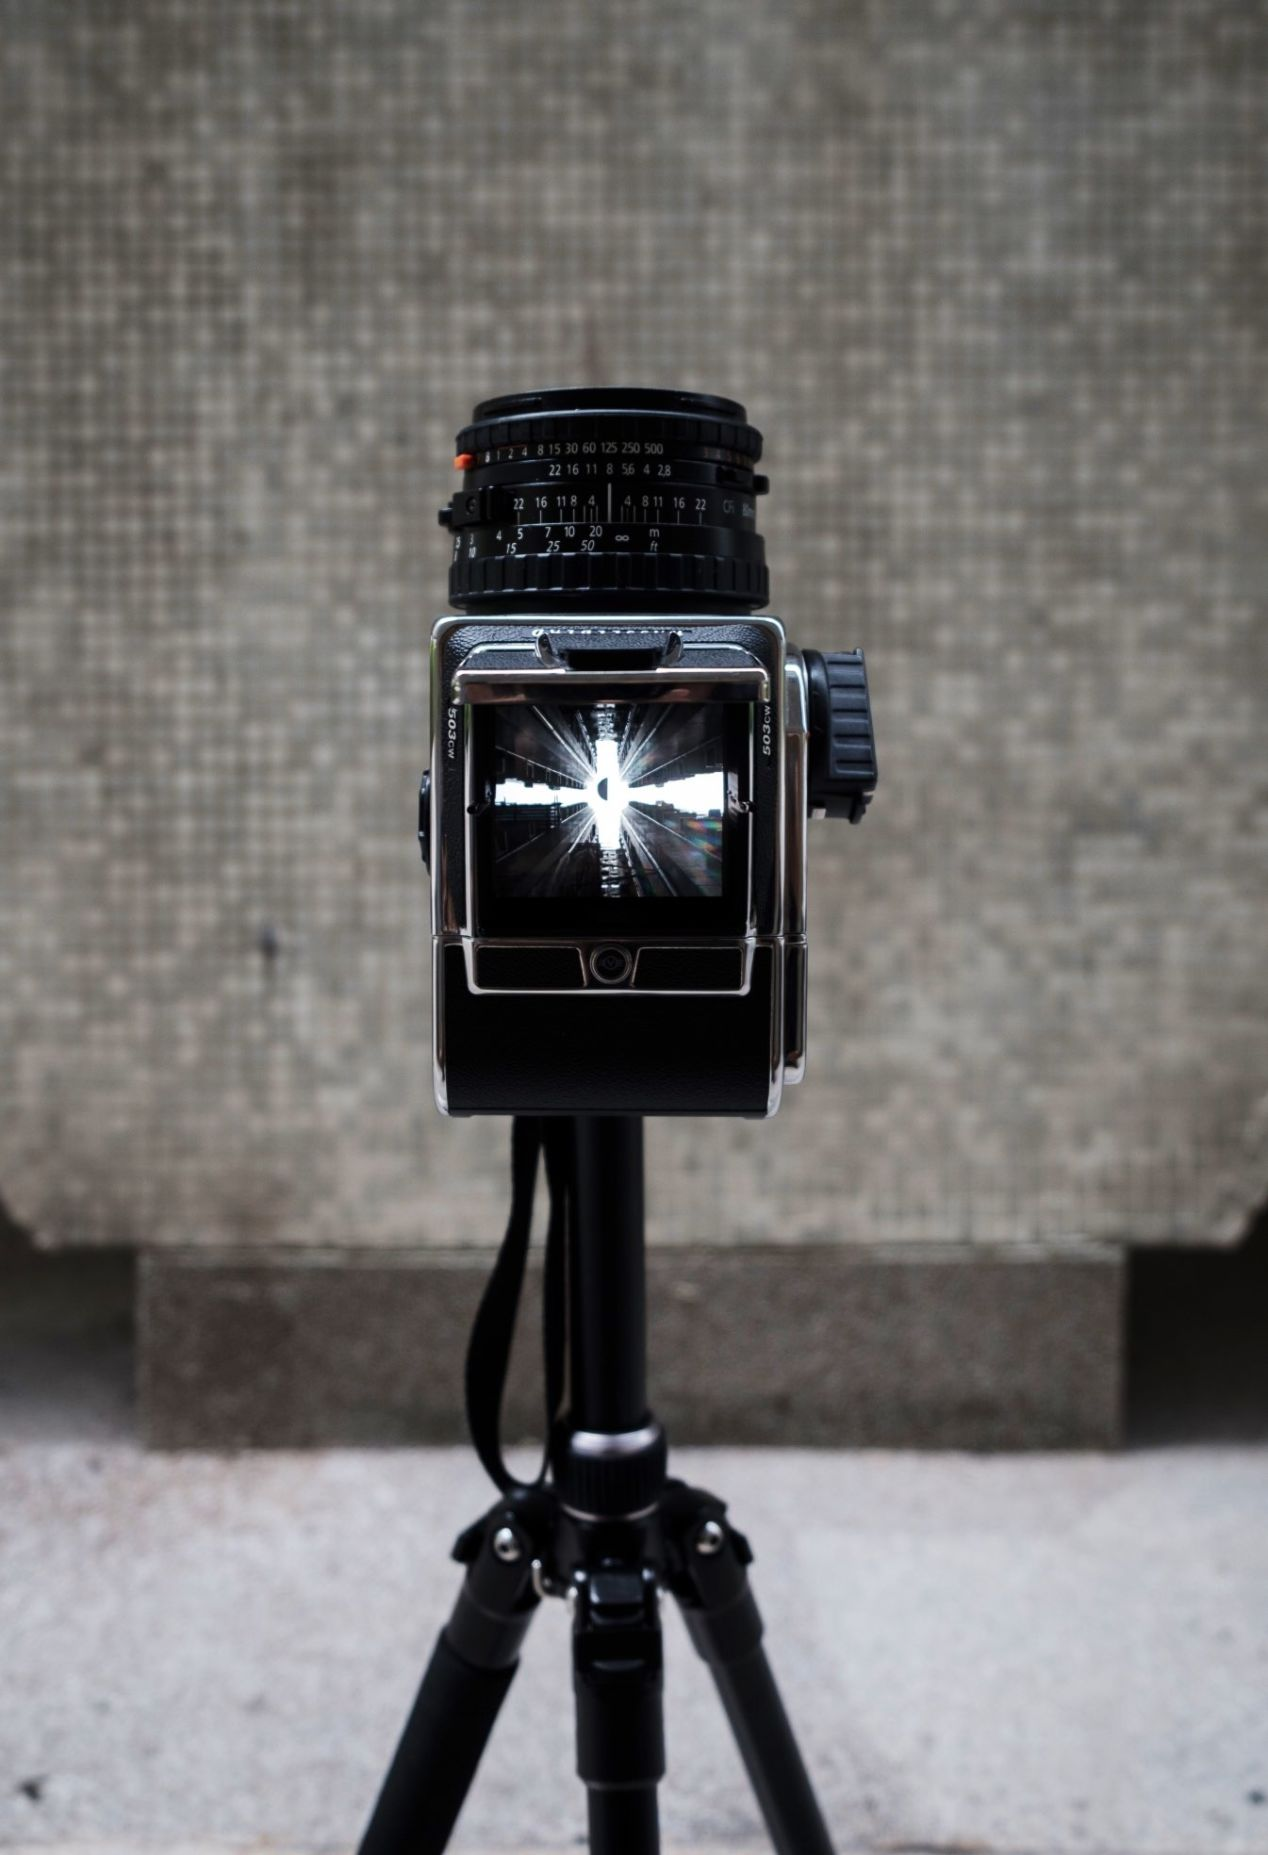 Hasselblad 503CW with the CFV-50C digital back.